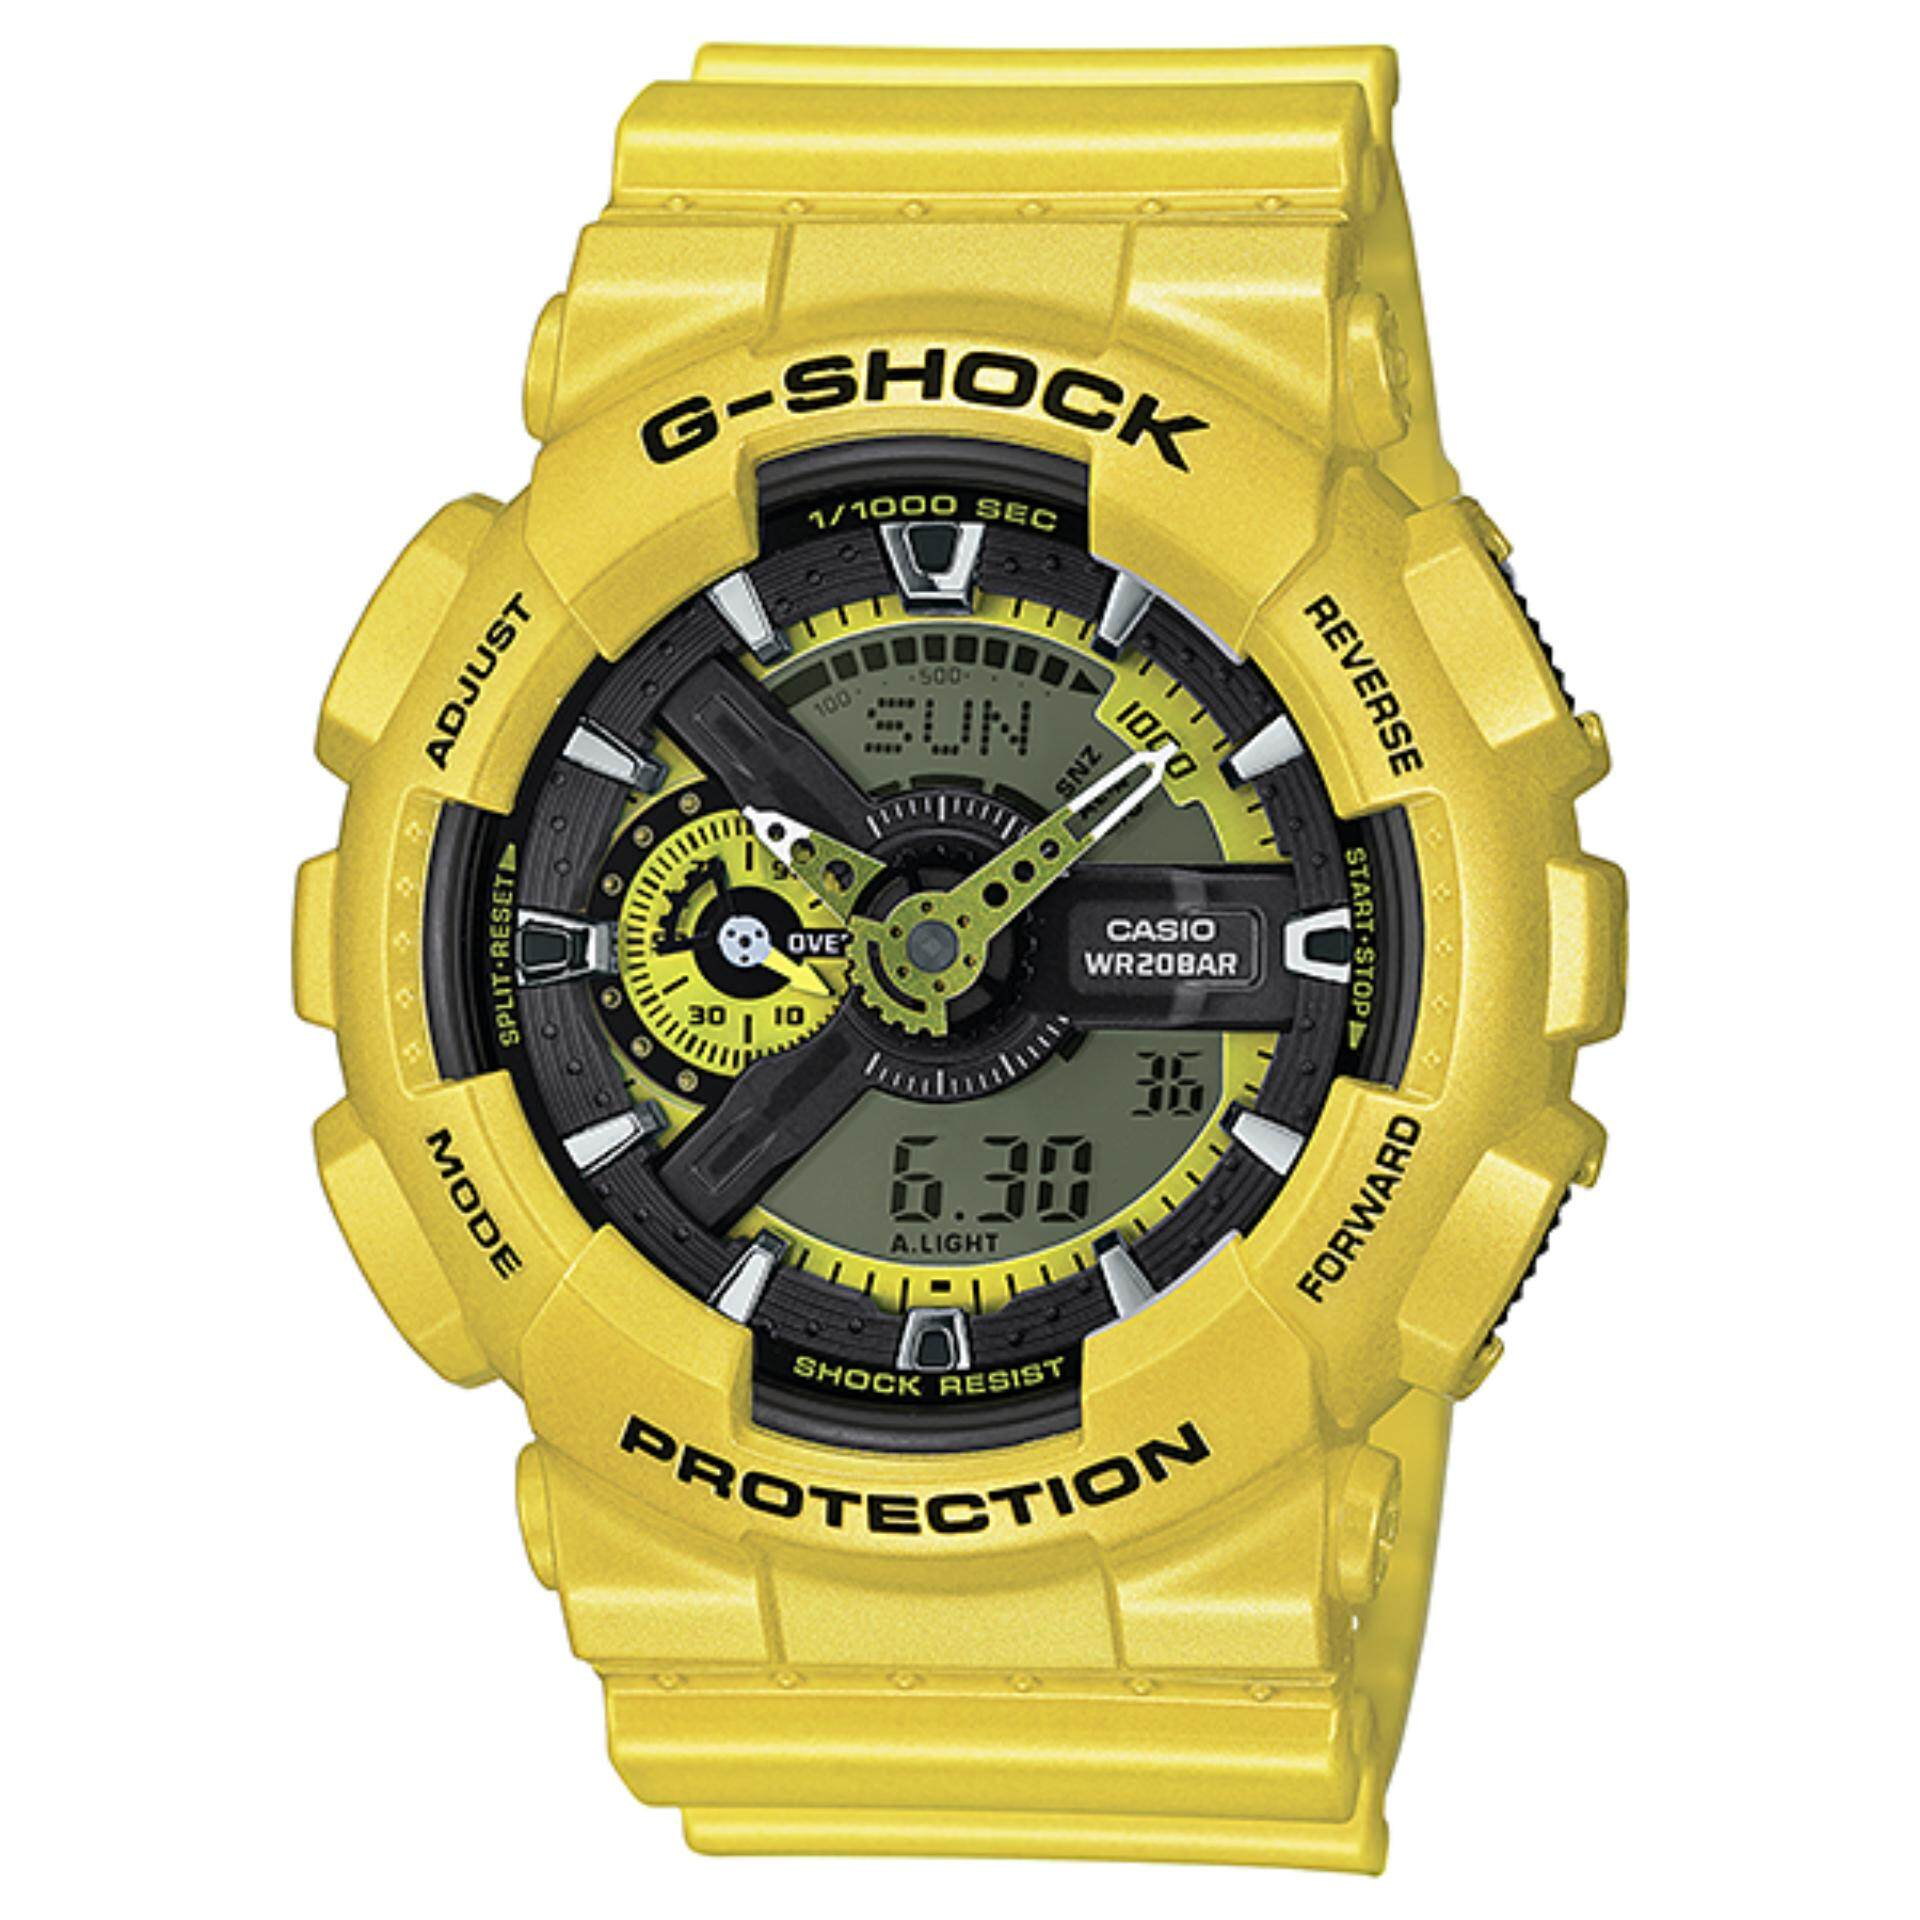 Casio G Shock Watches With Best Price At Lazada Malaysia Jam Tangan Gd 400 3dr Mens Yellow Resin Strap Watch Ga 110nm 9a Sales Item